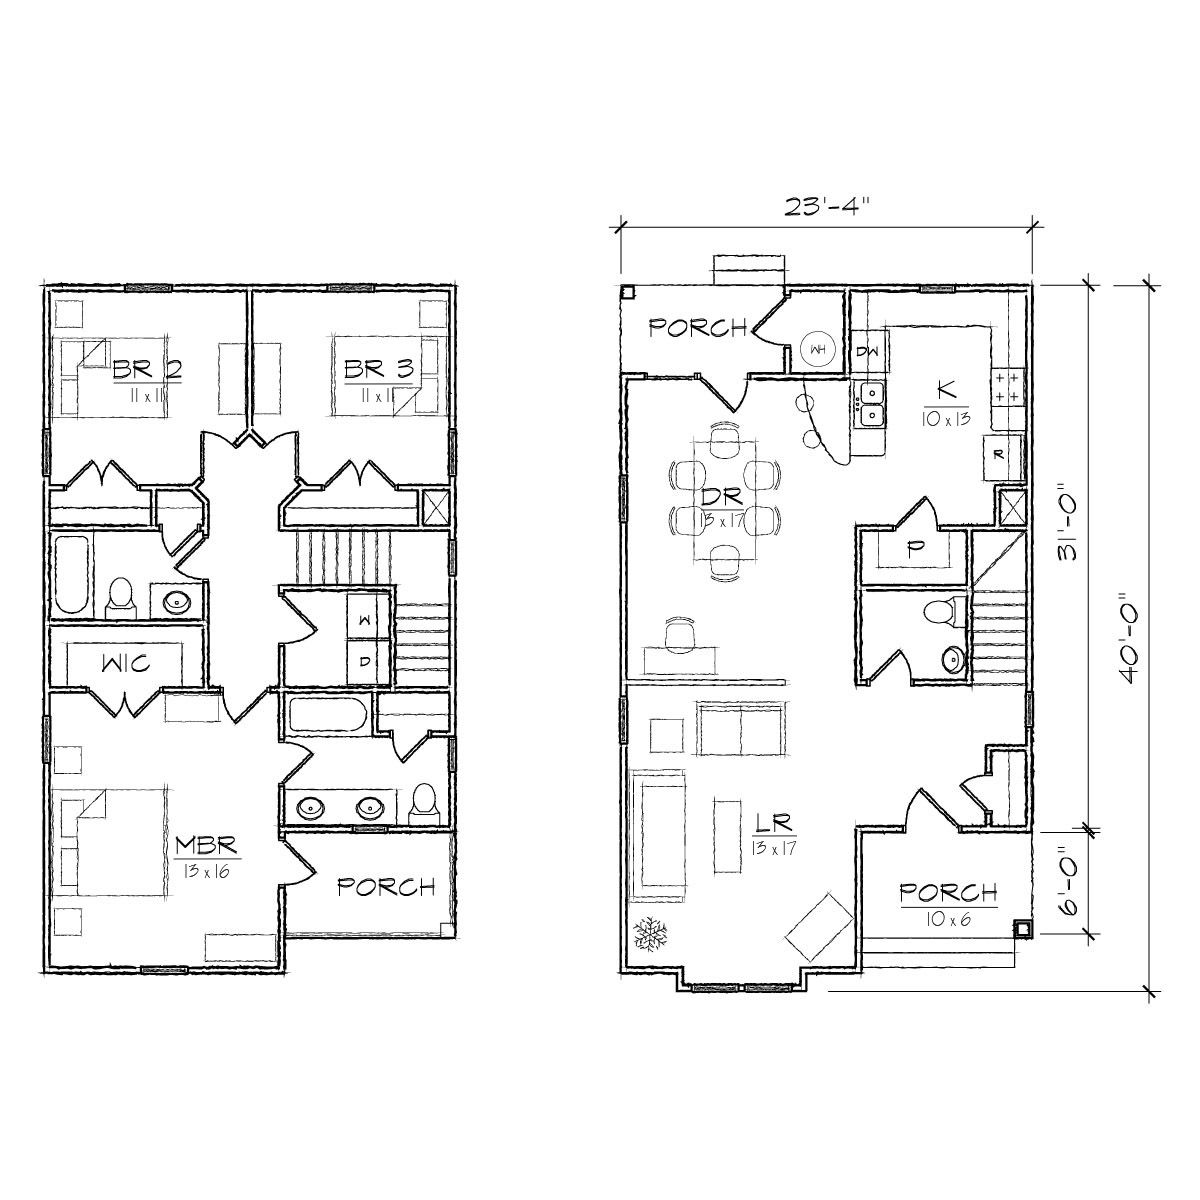 30 Best Dupex Images On Pinterest  Floor Plans, Small Houses And  Architecture